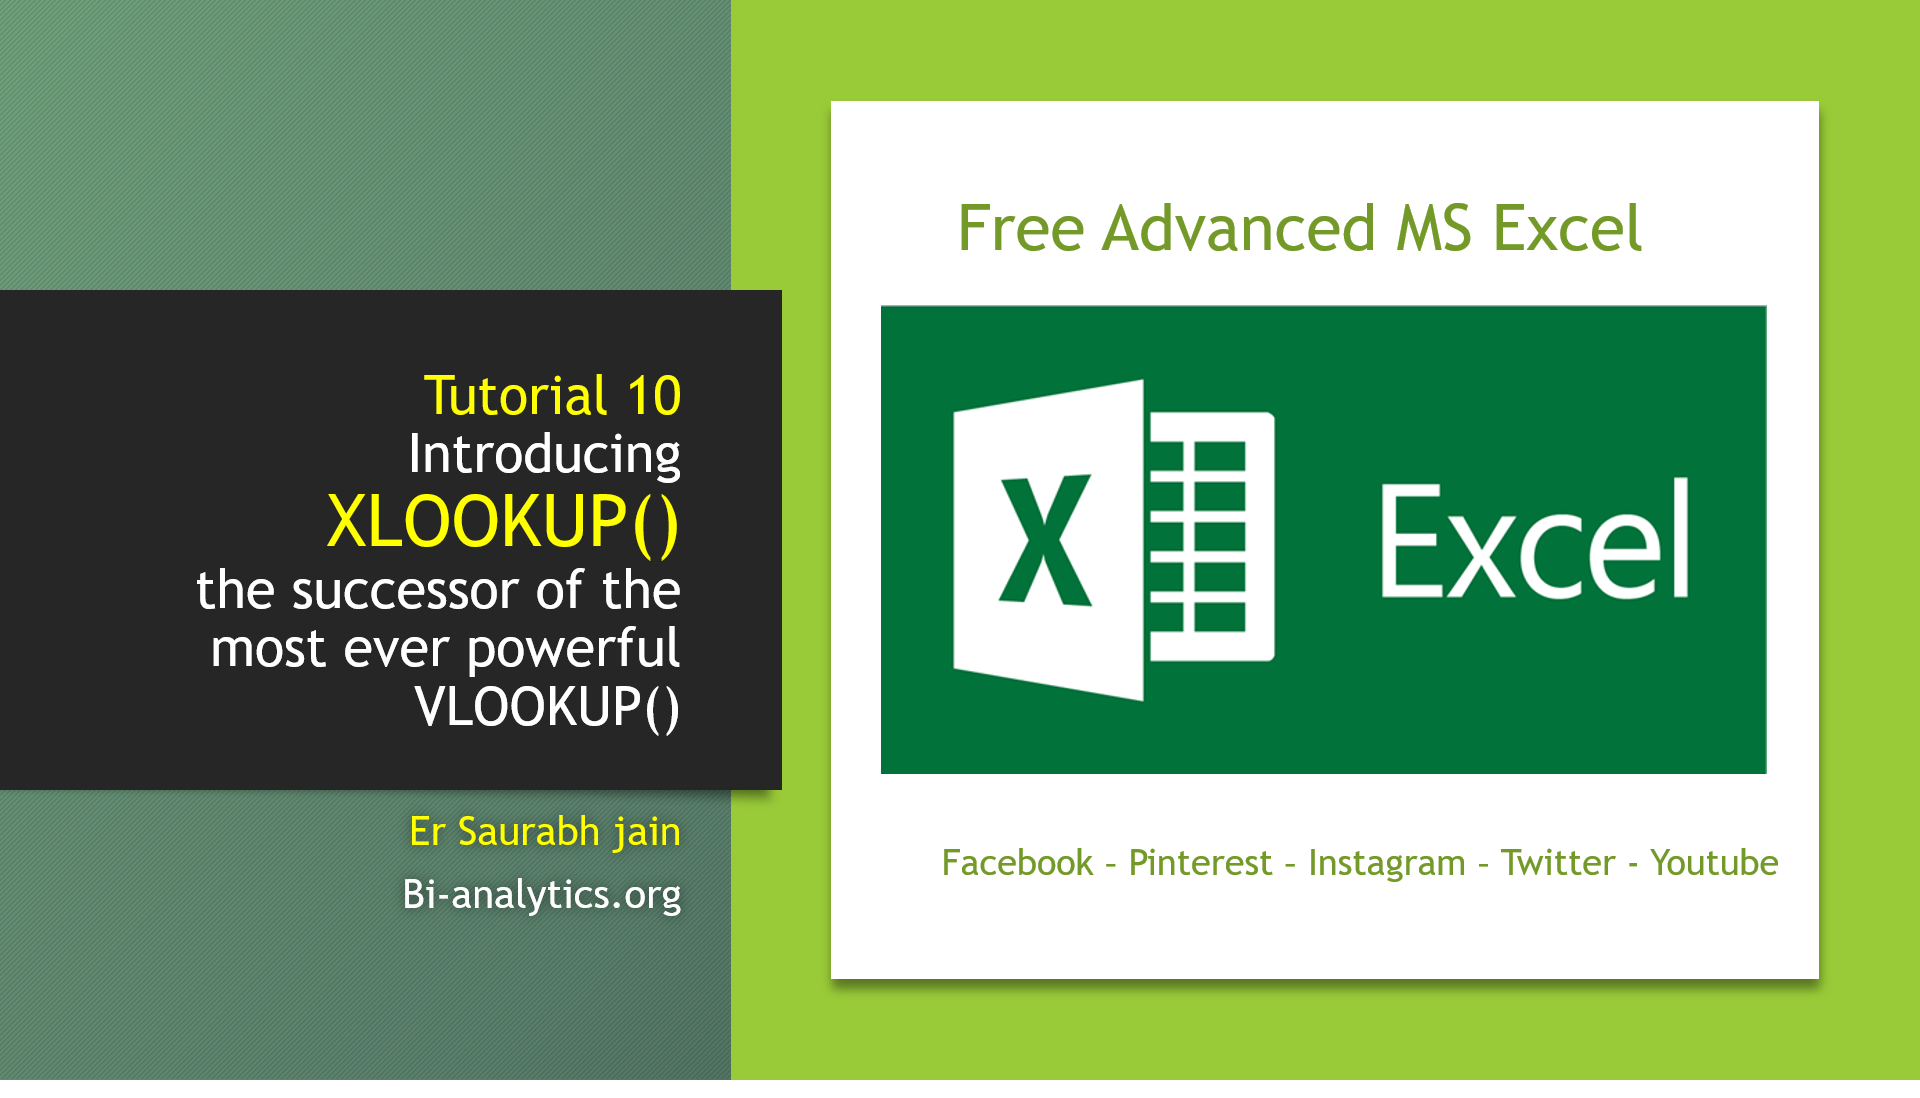 Tutorial 10 Introducing XLOOKUP()  the successor of the most ever powerful VLOOKUP()